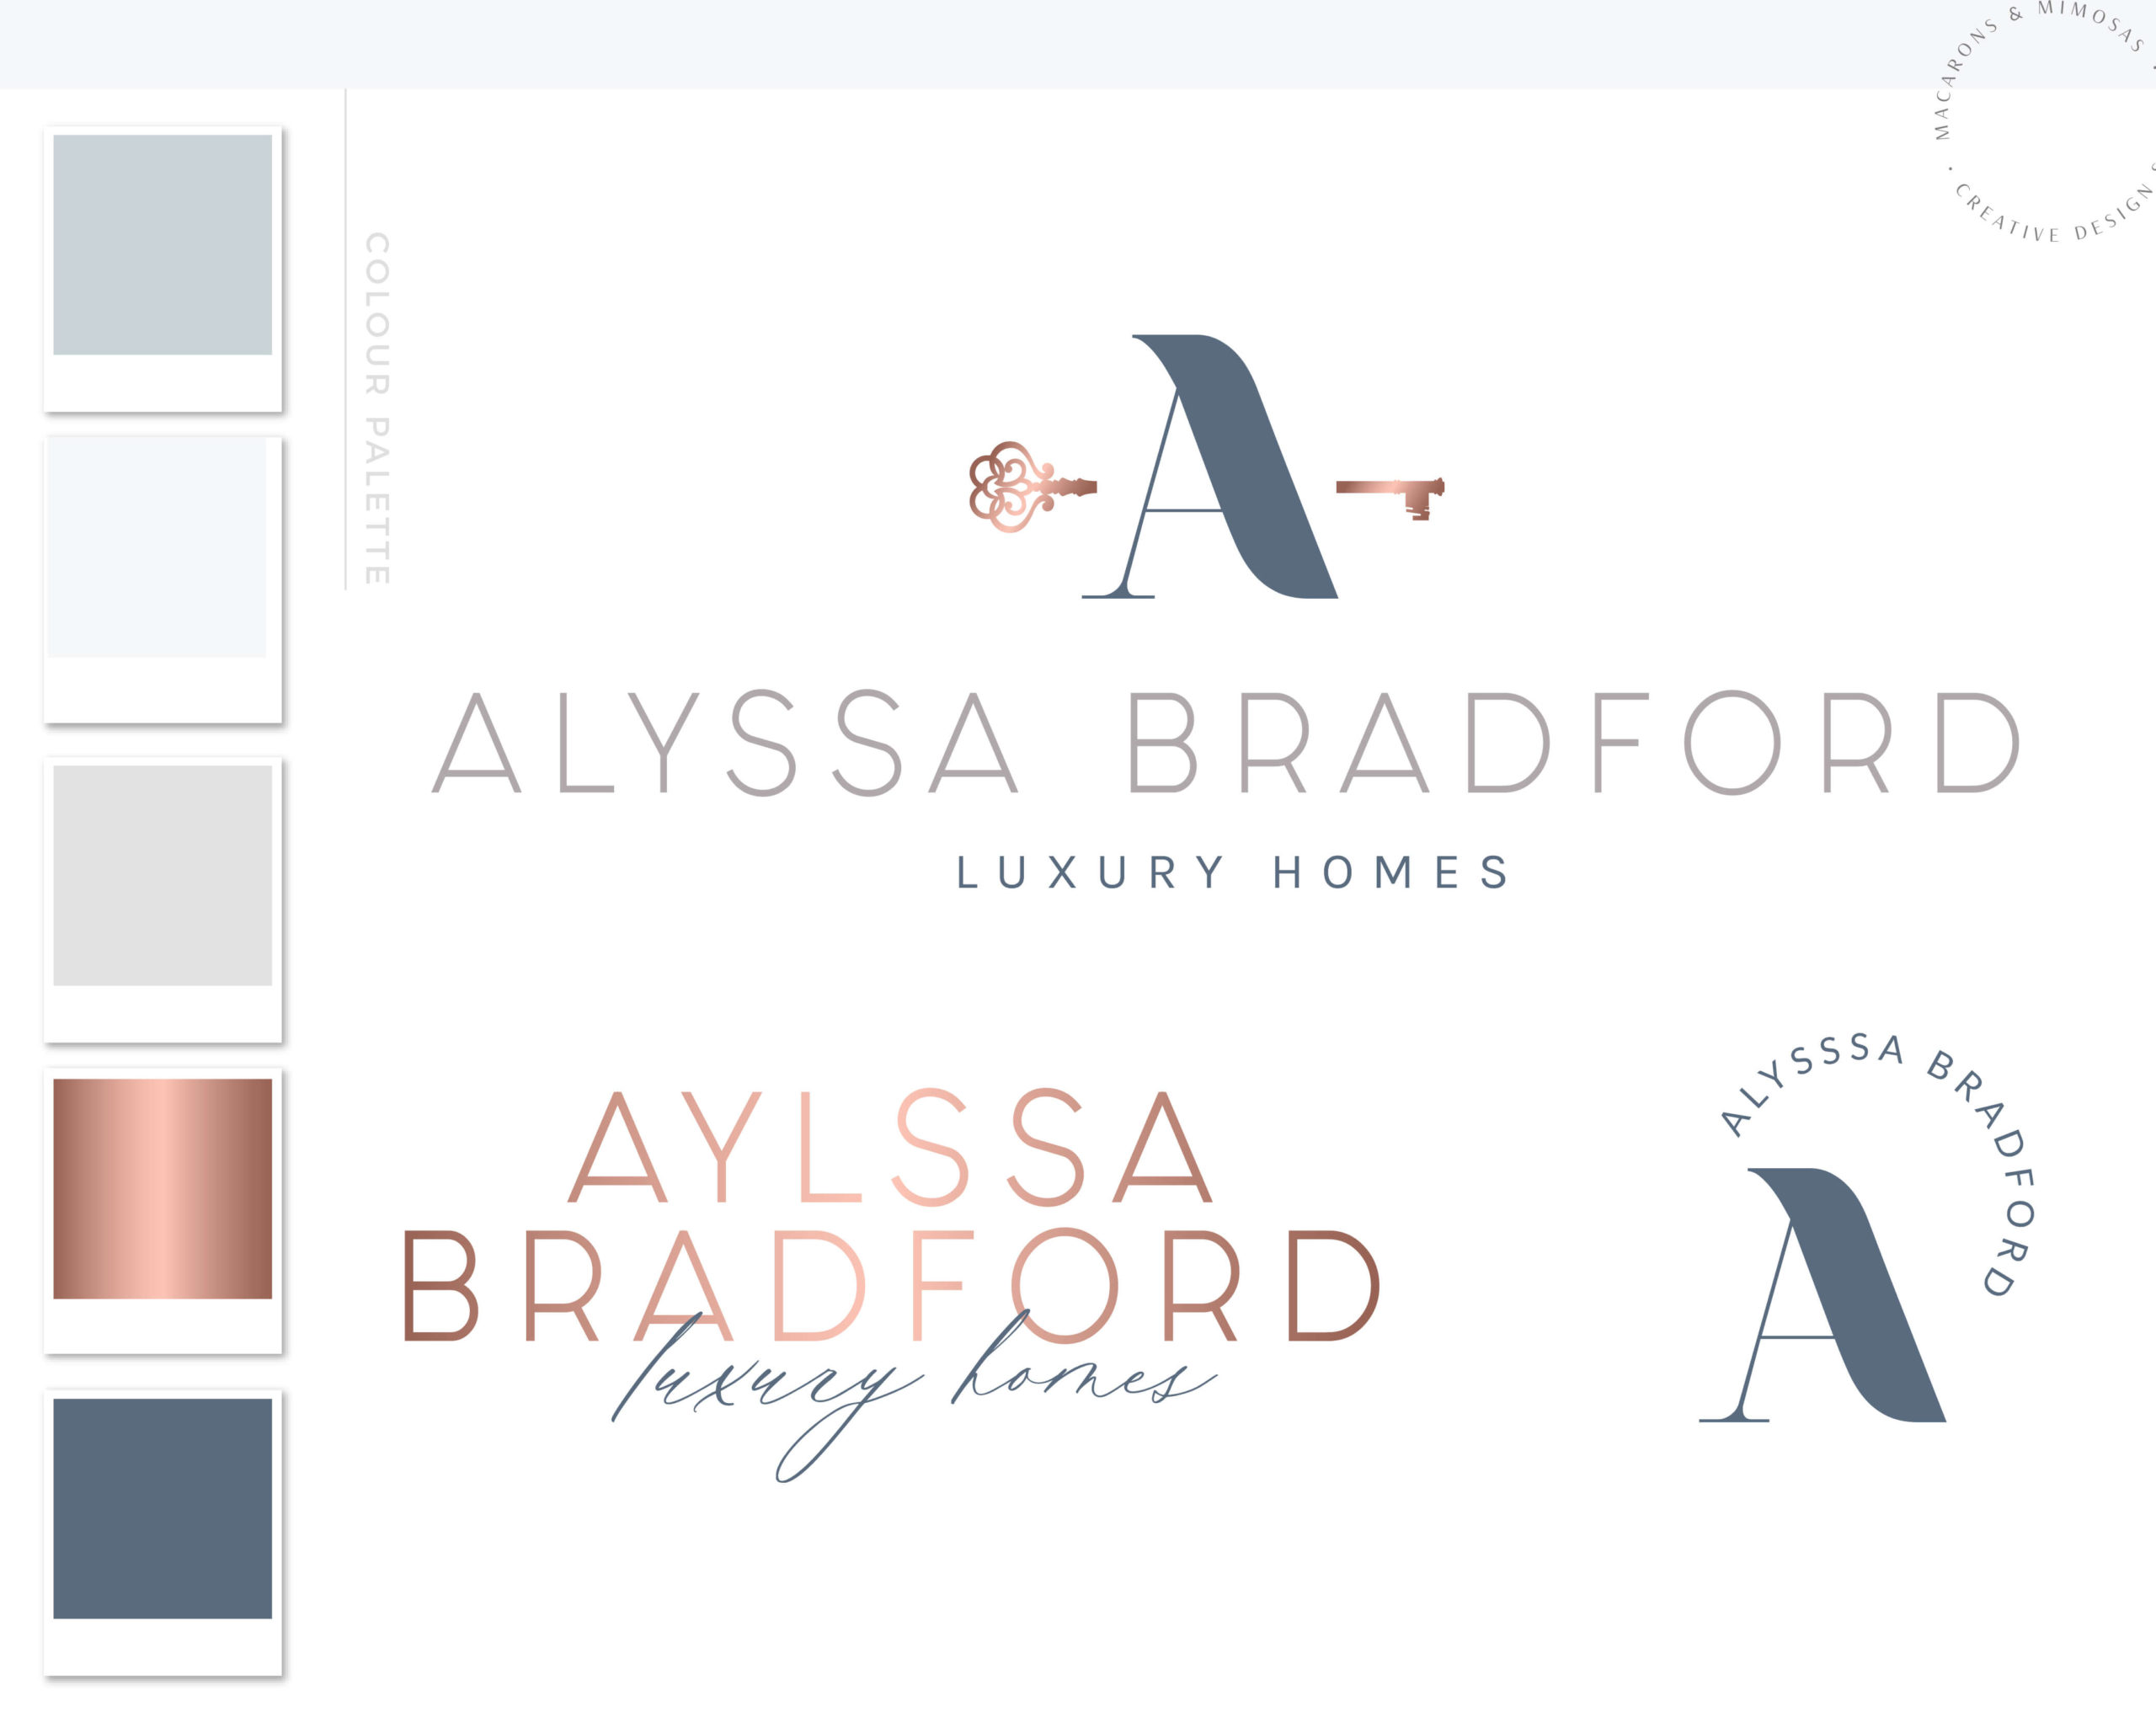 Real Estate Logo Design, Realtor Logo, House logo watermark, Broker Logo Marketing and Branding Package for Agents